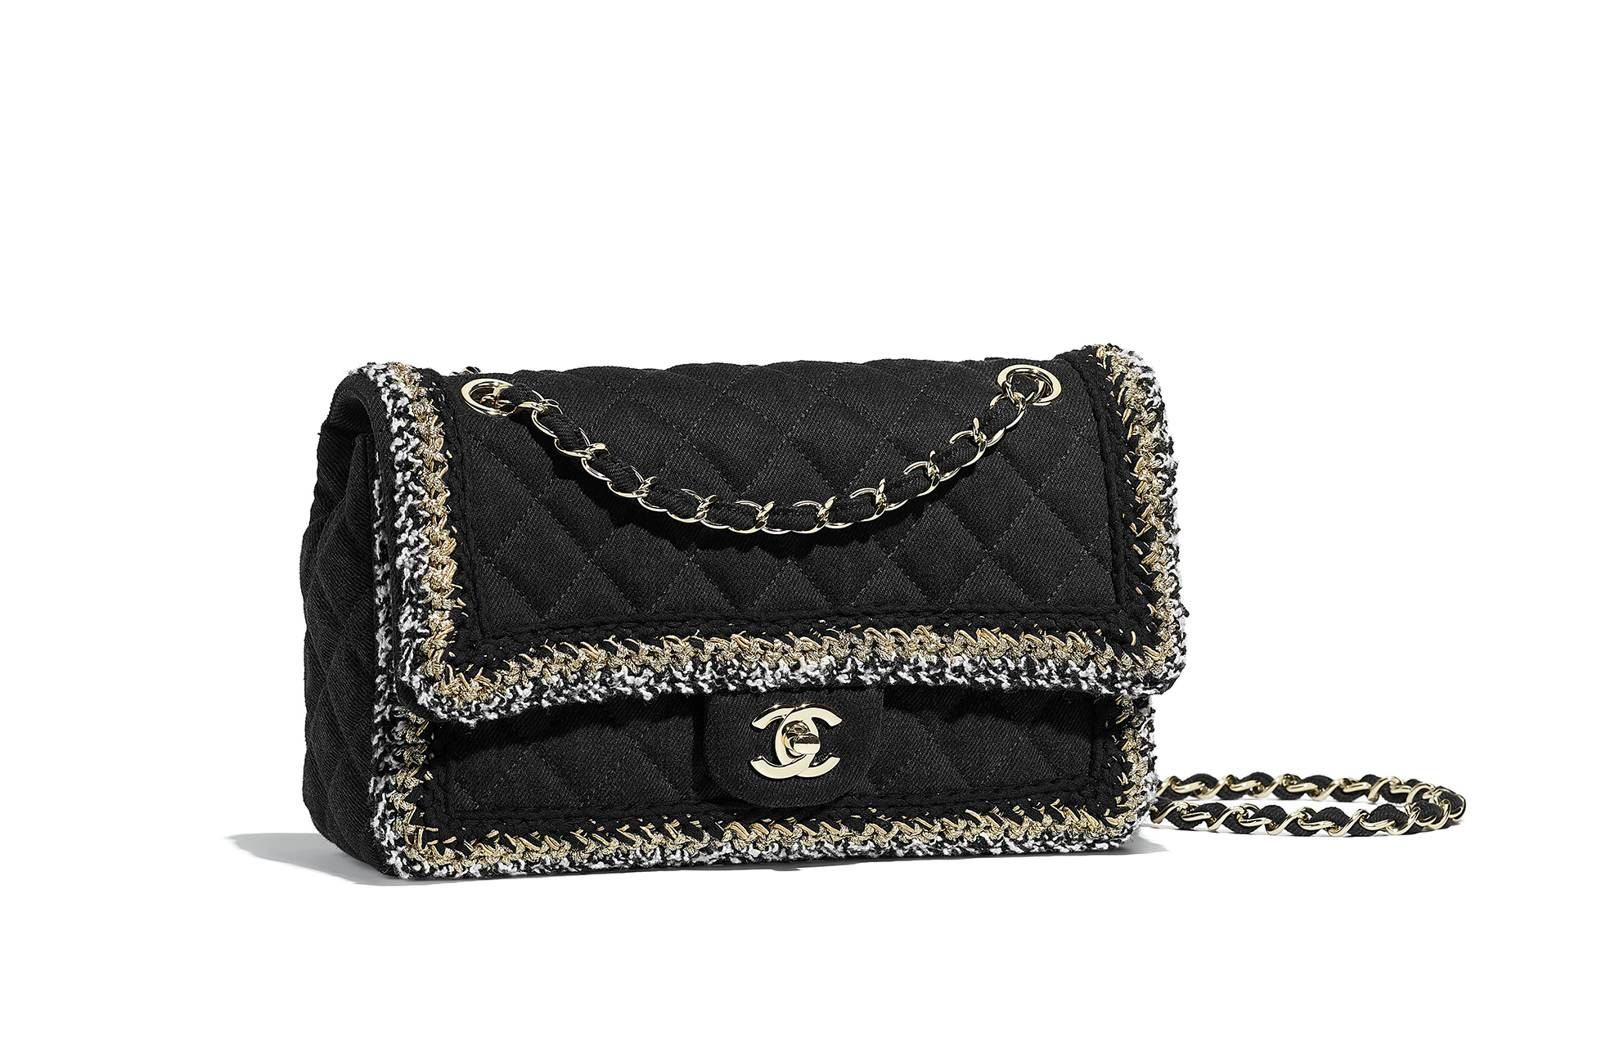 3abf242bfe91 Chain Shoulder Bags | The Best To Buy Now | British Vogue